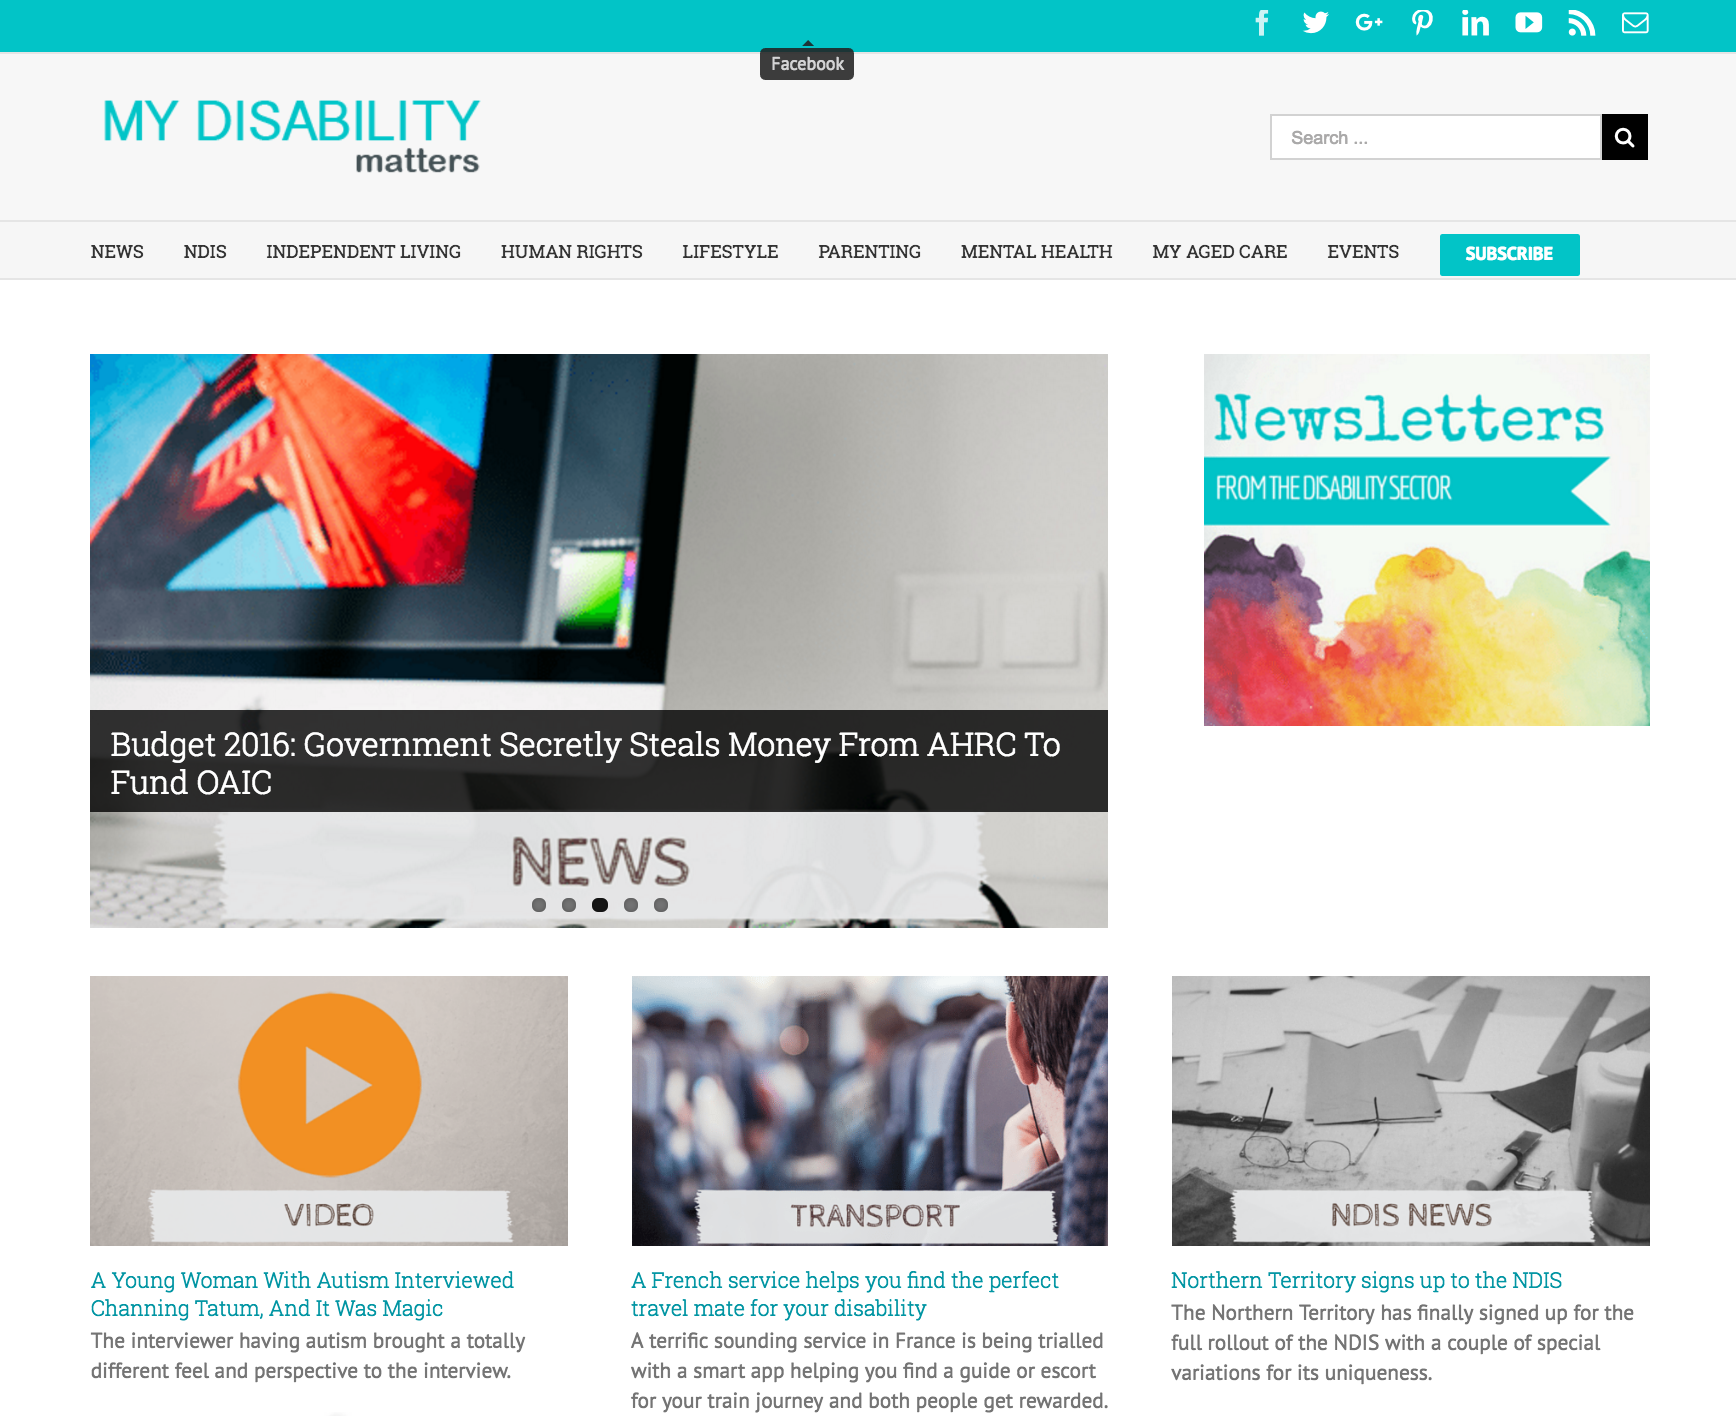 showcase-my-disability-matters